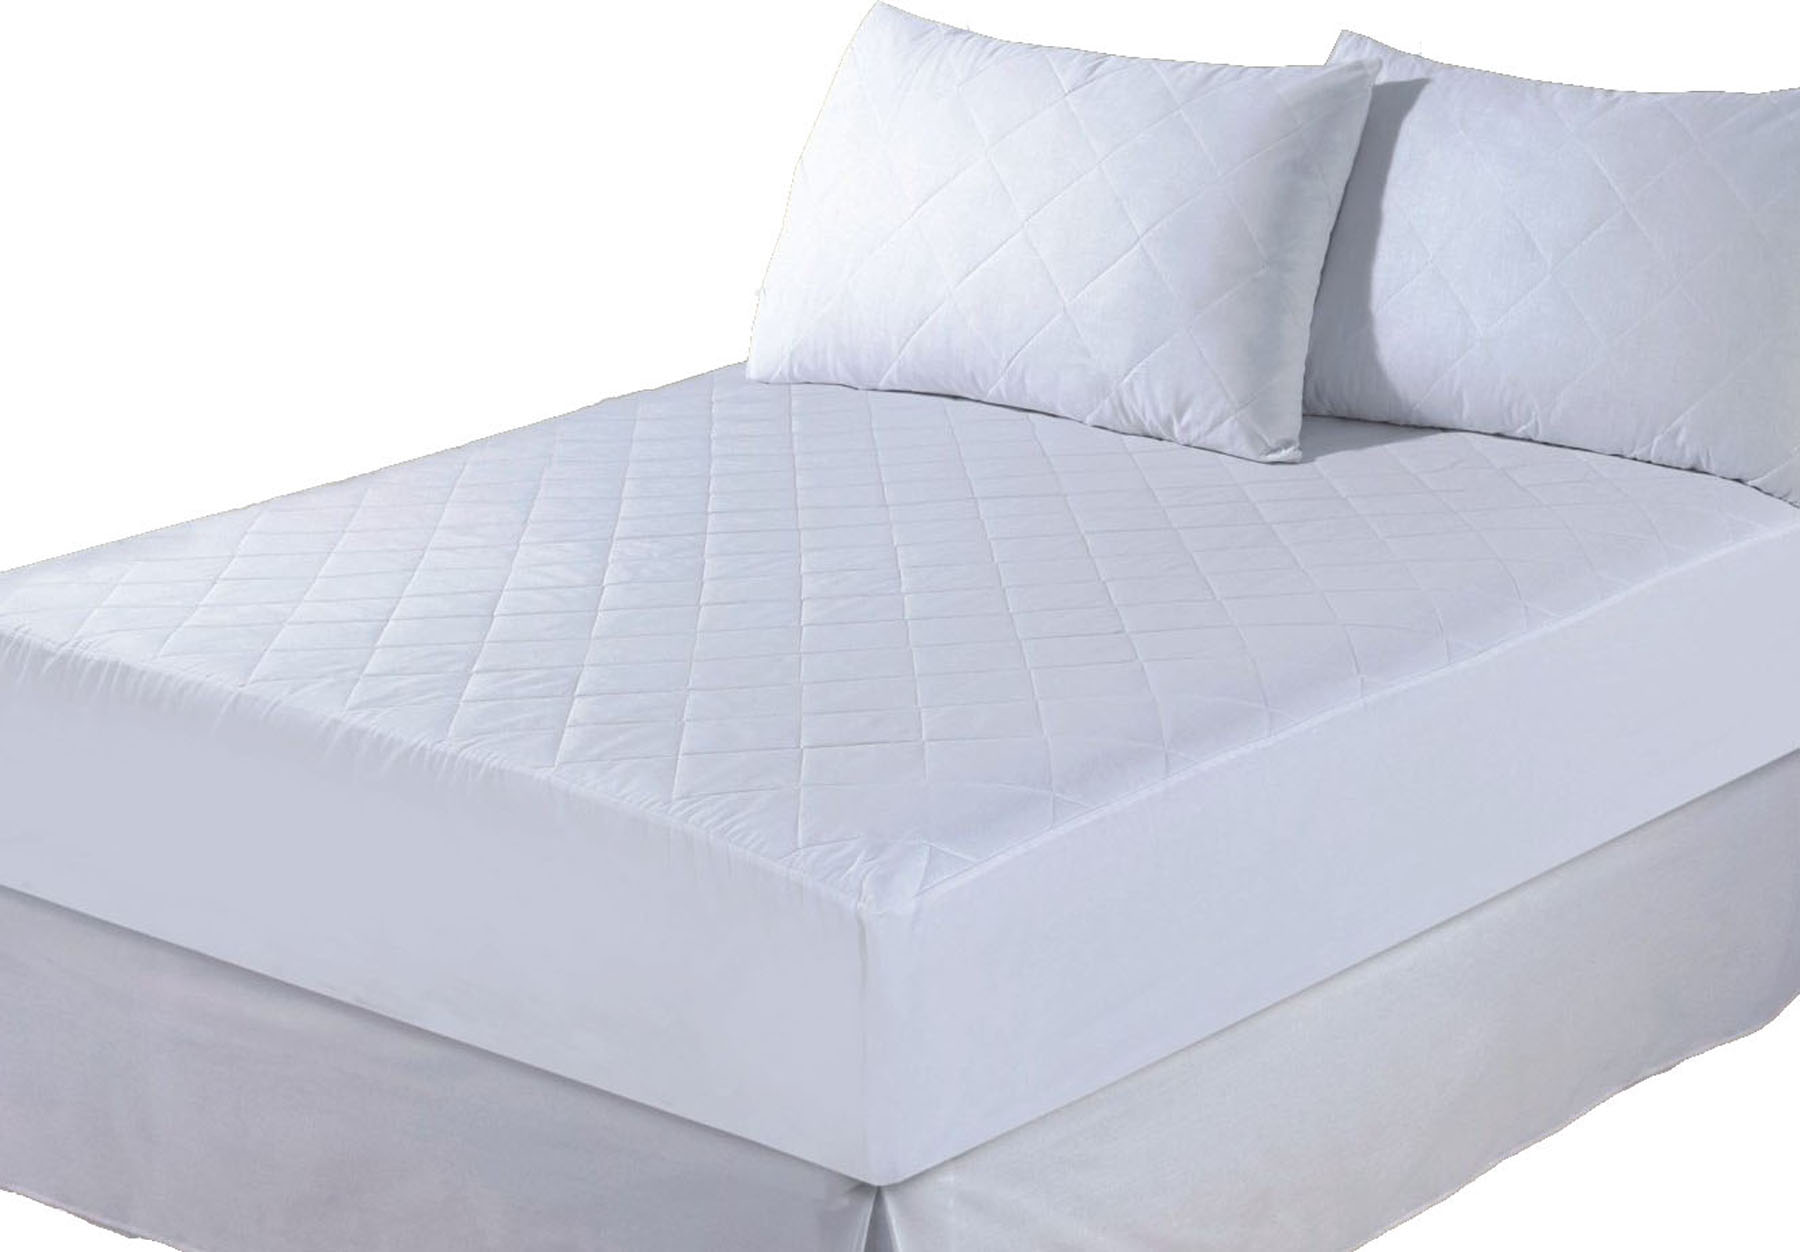 Luxury extra deep 12 quilted mattress protector fitted for How to cover a bed